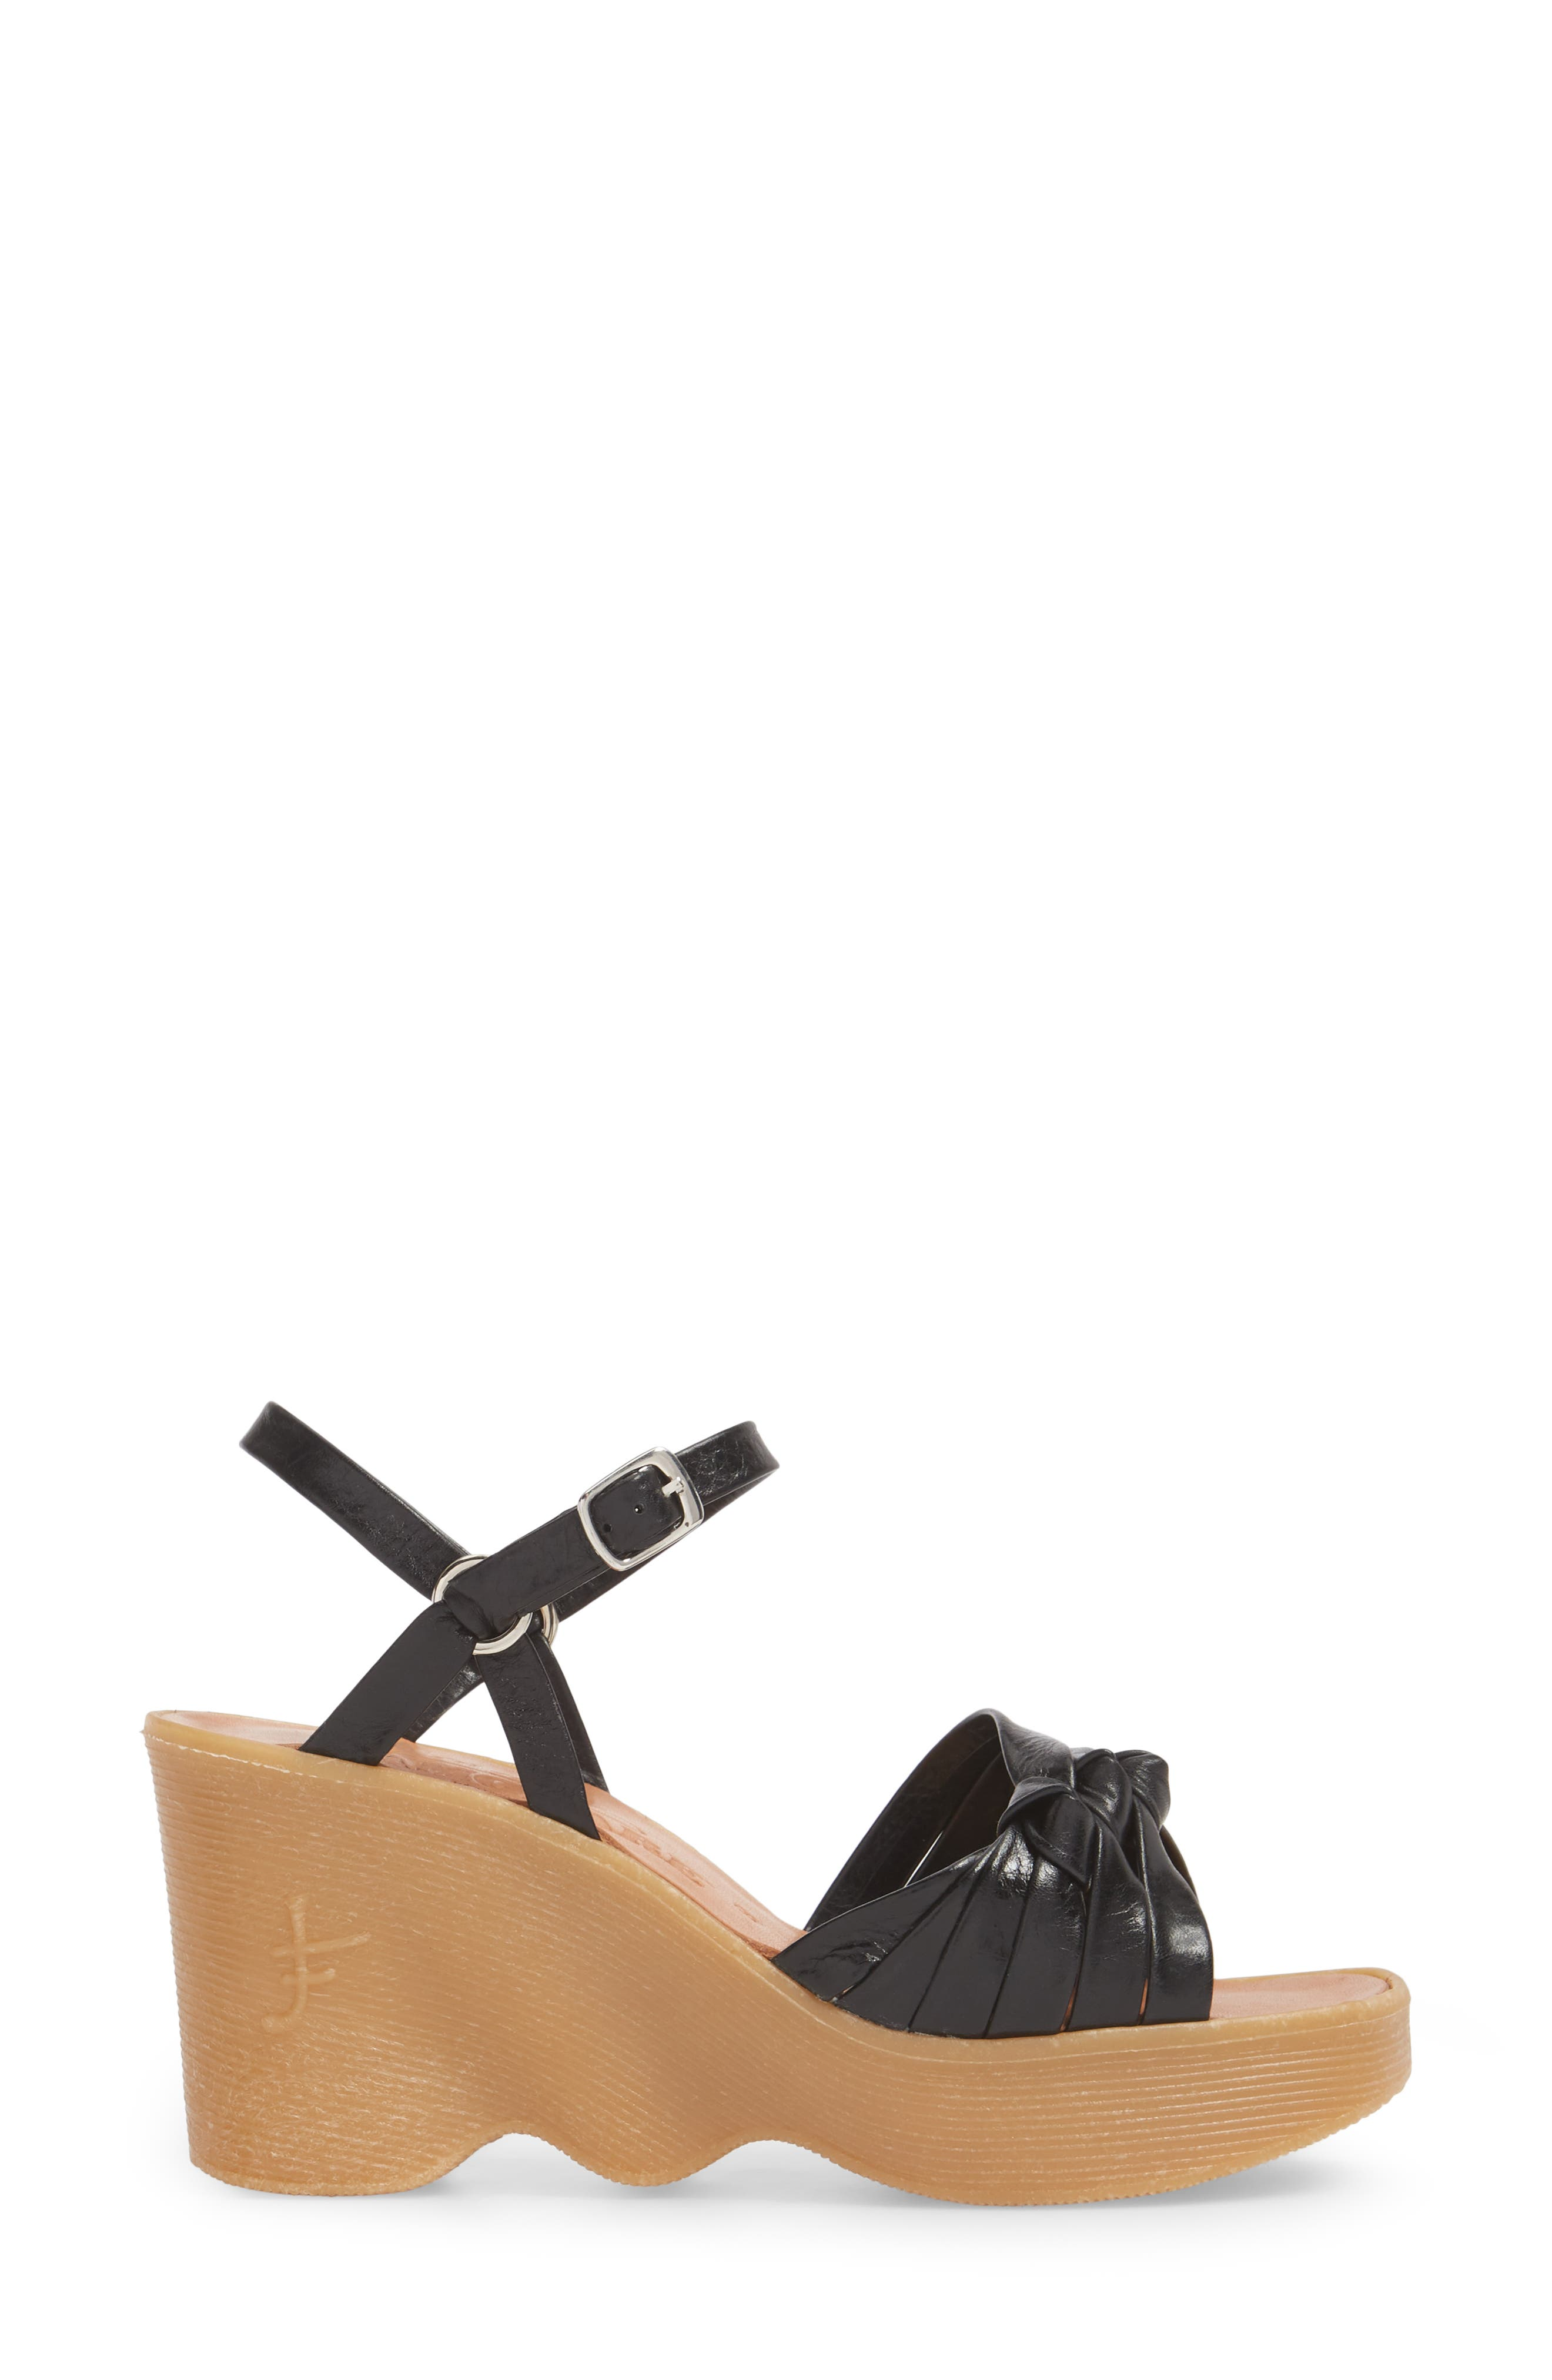 Knot So Fast Wedge Sandal,                             Alternate thumbnail 3, color,                             COAL LEATHER